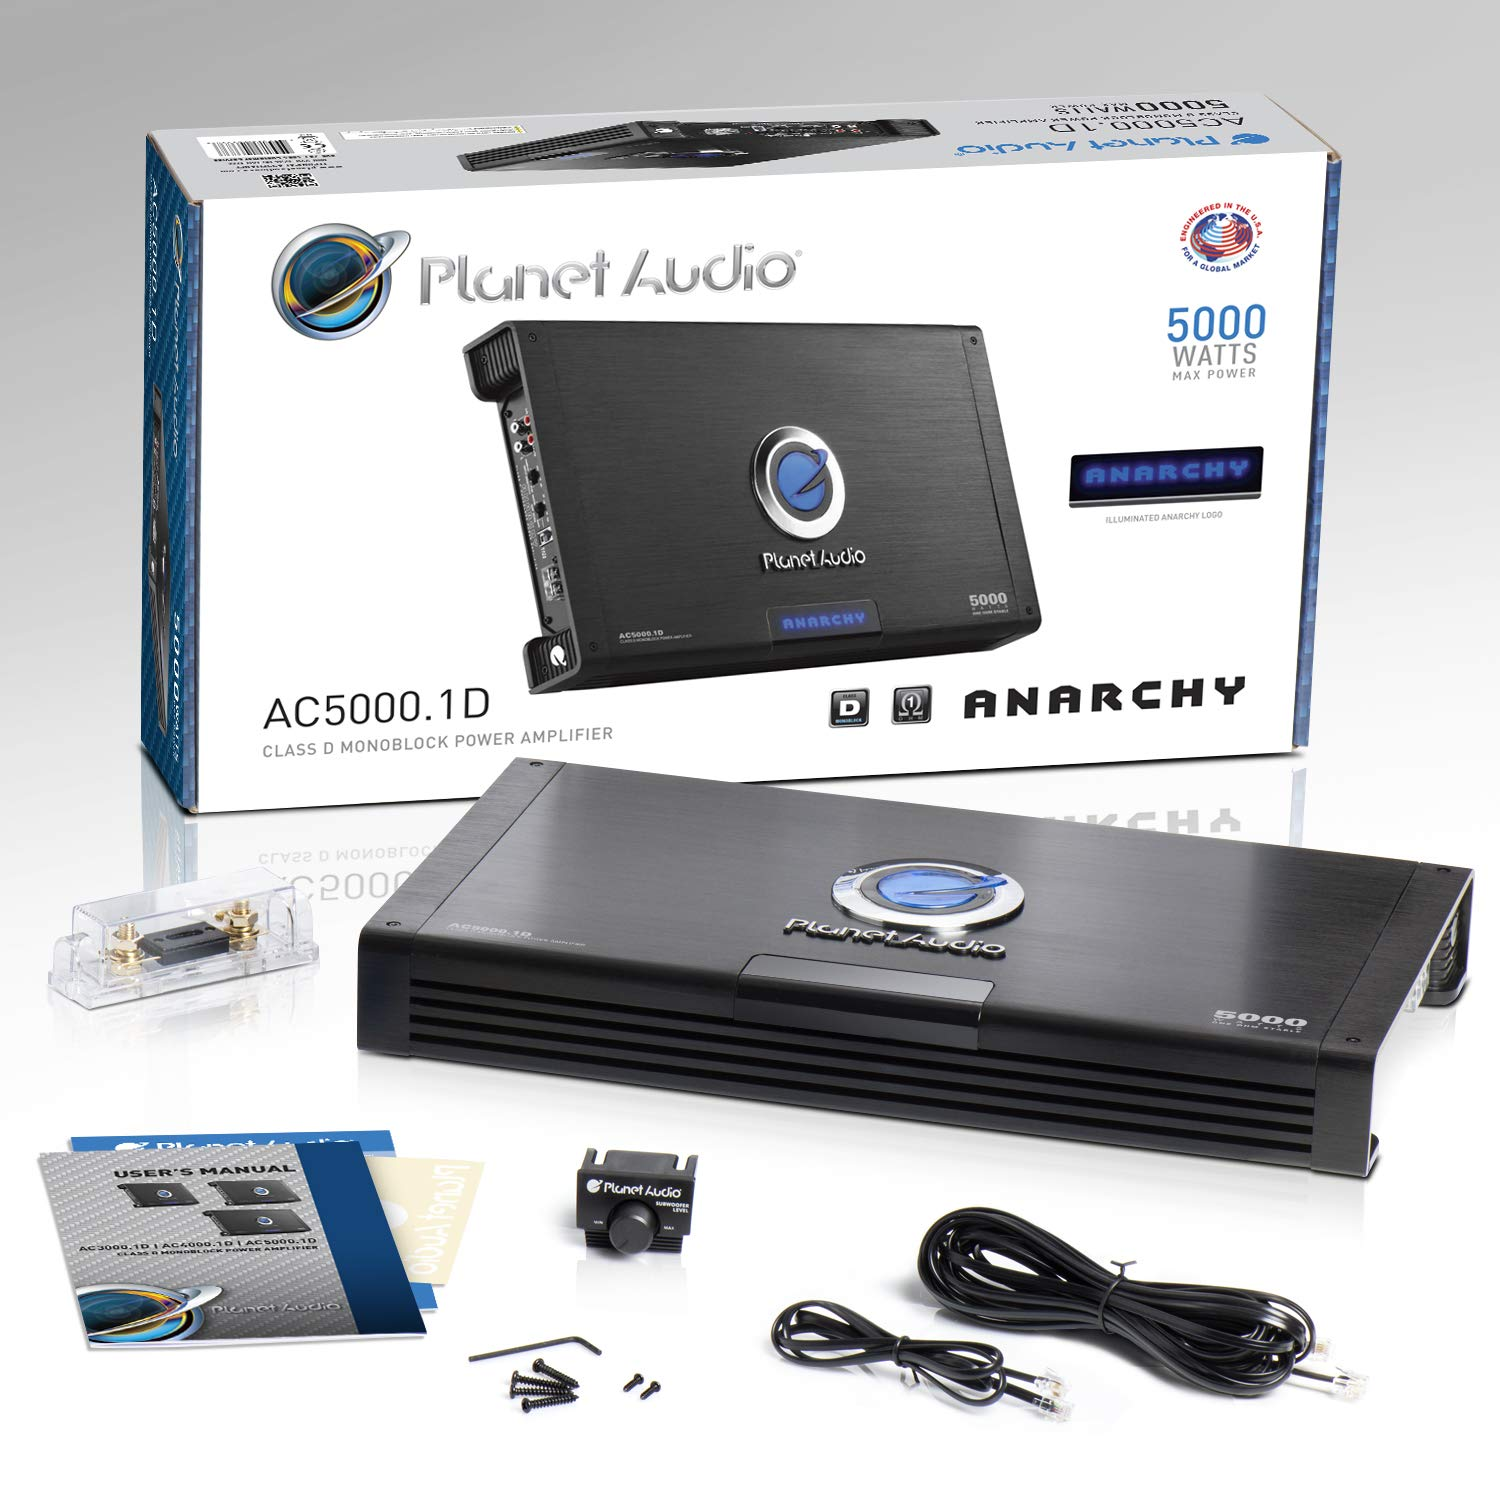 Remote Subwoofer Control Monoblock Planet Audio AC1500.1M Car Amplifier Class A//B MOSFET Power Supply 1500 Watts Max Power 2//4 Ohm Stable